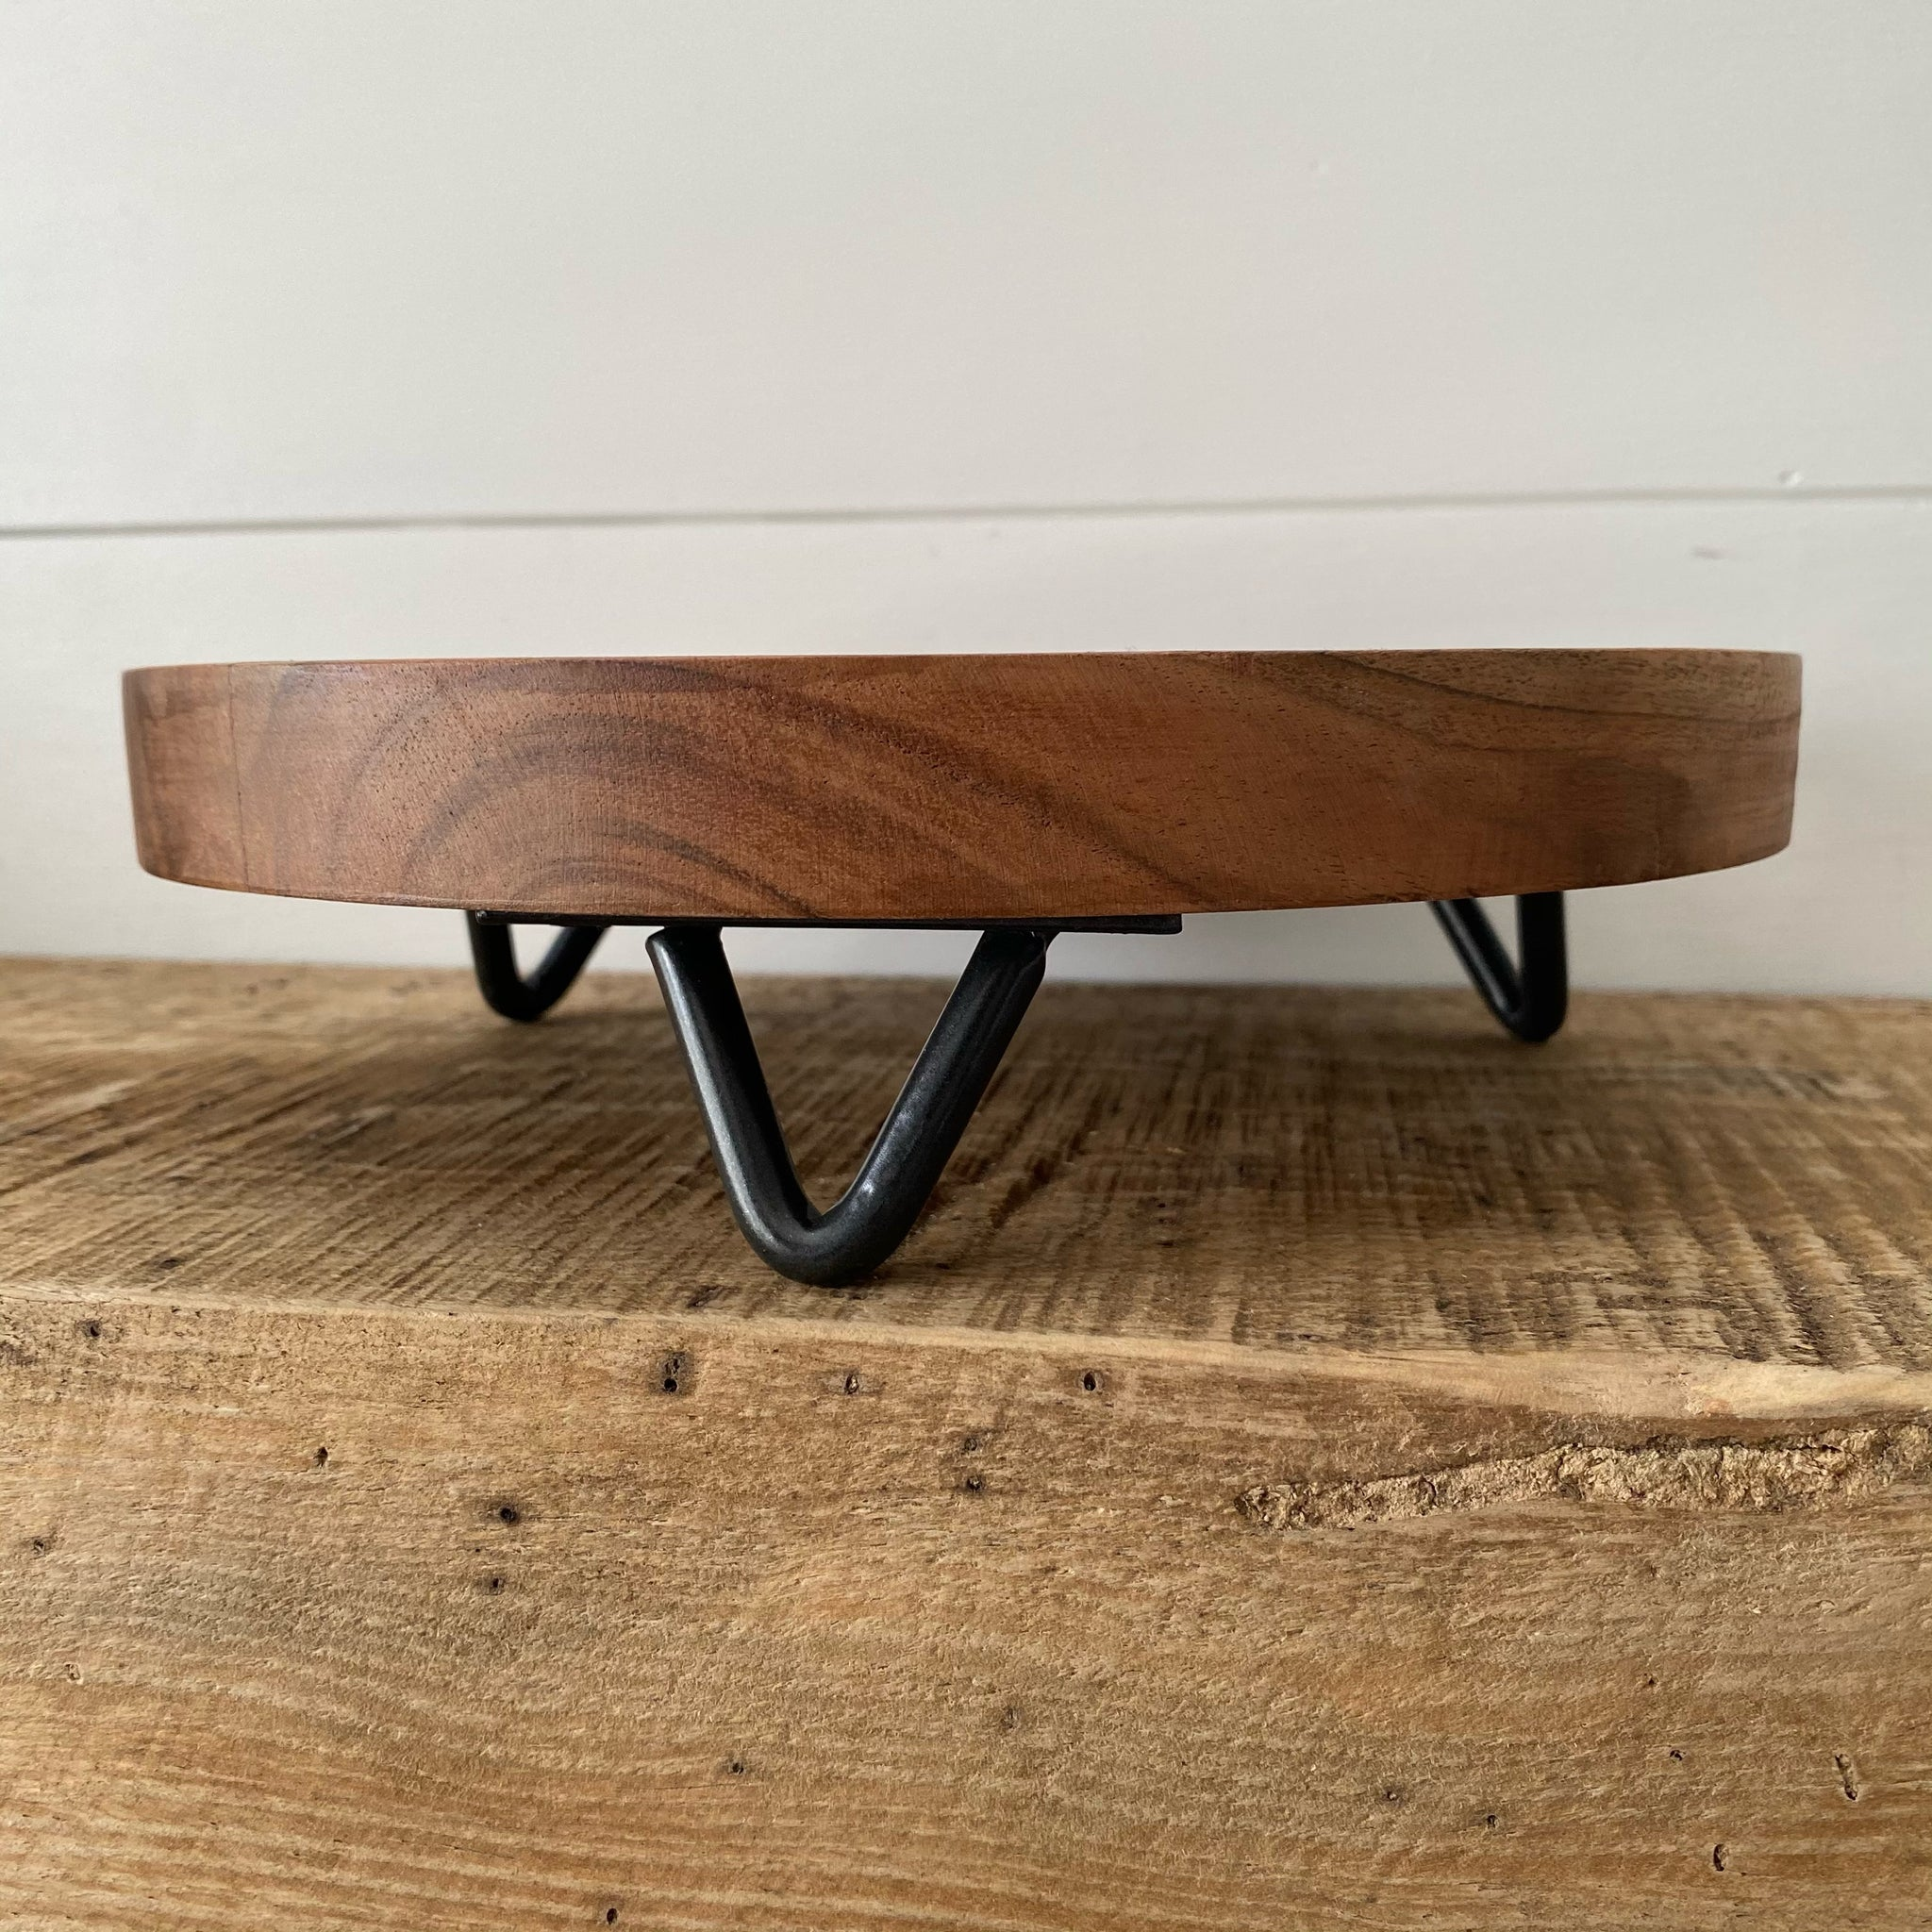 Tripod Cake Stand - Engraved - Black Friday